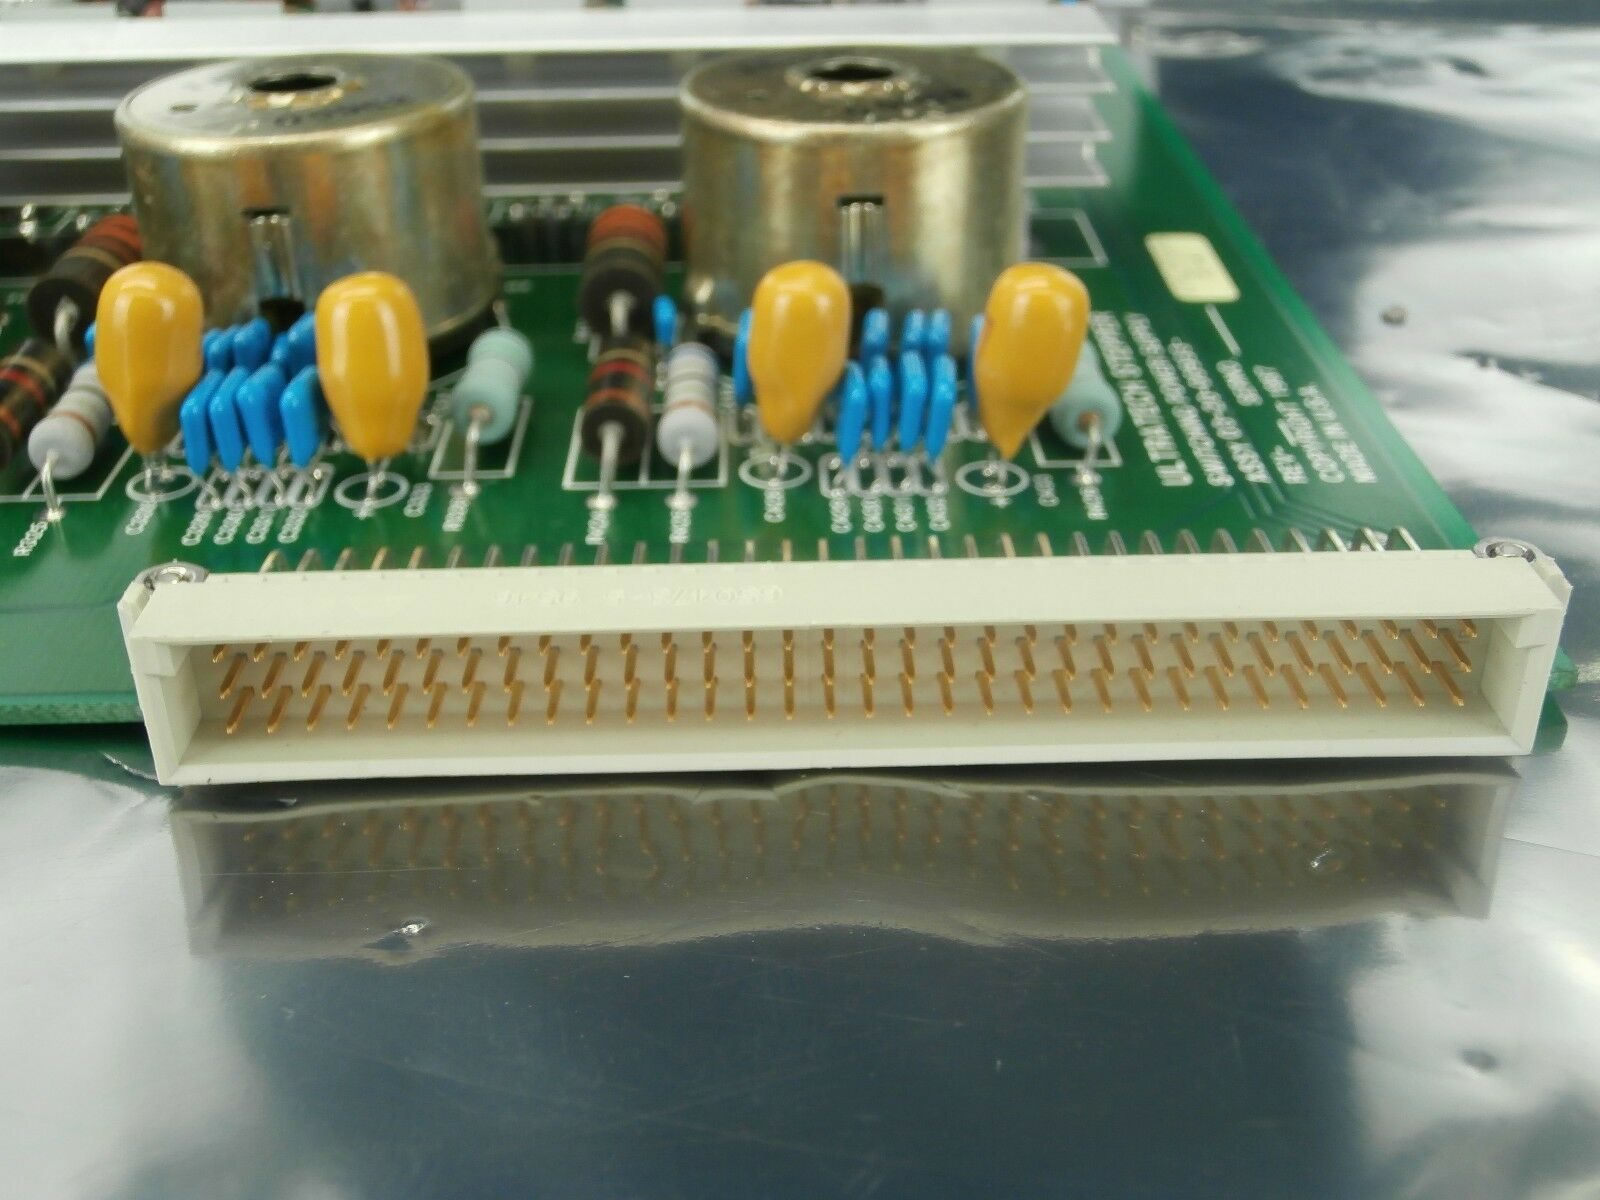 Ultratech Stepper 03-20-00933-03 Switching Power Supply Rev. A1 PCB Card 4700